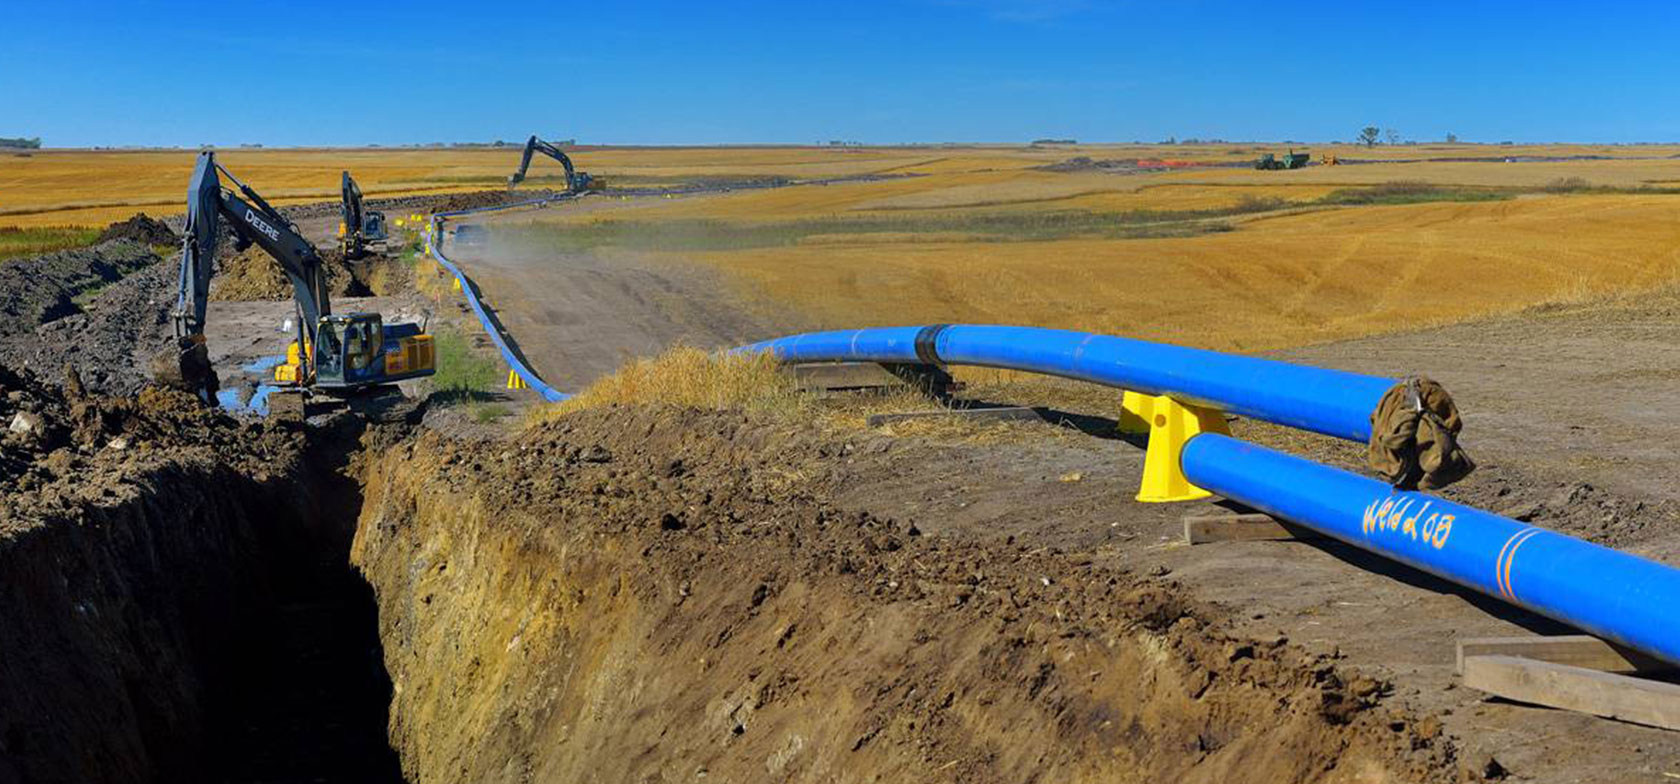 NTL Pipelines uses mobile forms to complete a pipeline project, laying blue pipe in an open field